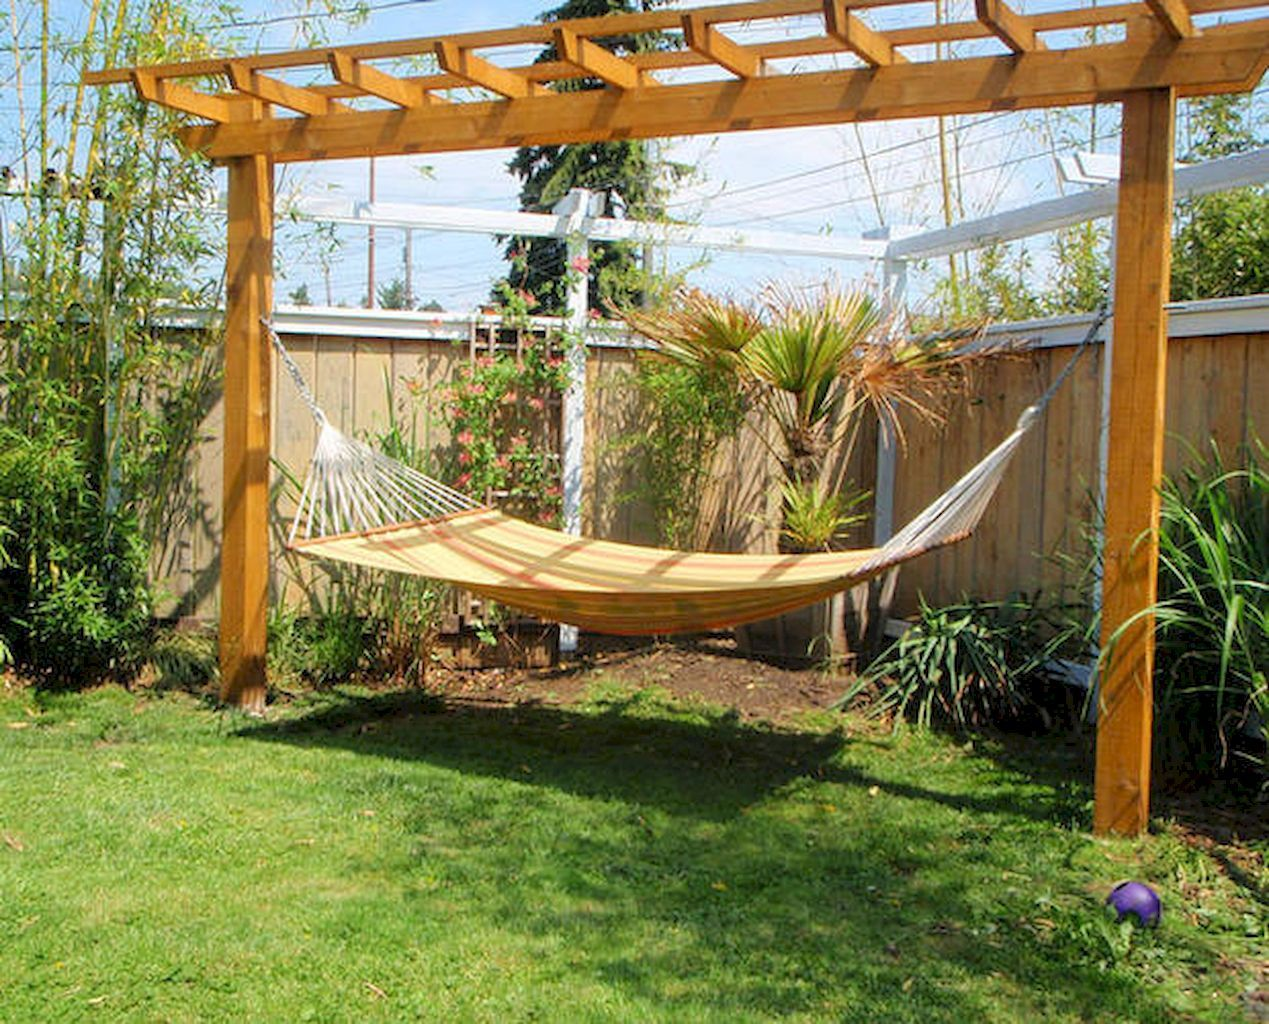 70 Wooden Privacy Fence Backyard Design Landscaping Ideas | Rede ...